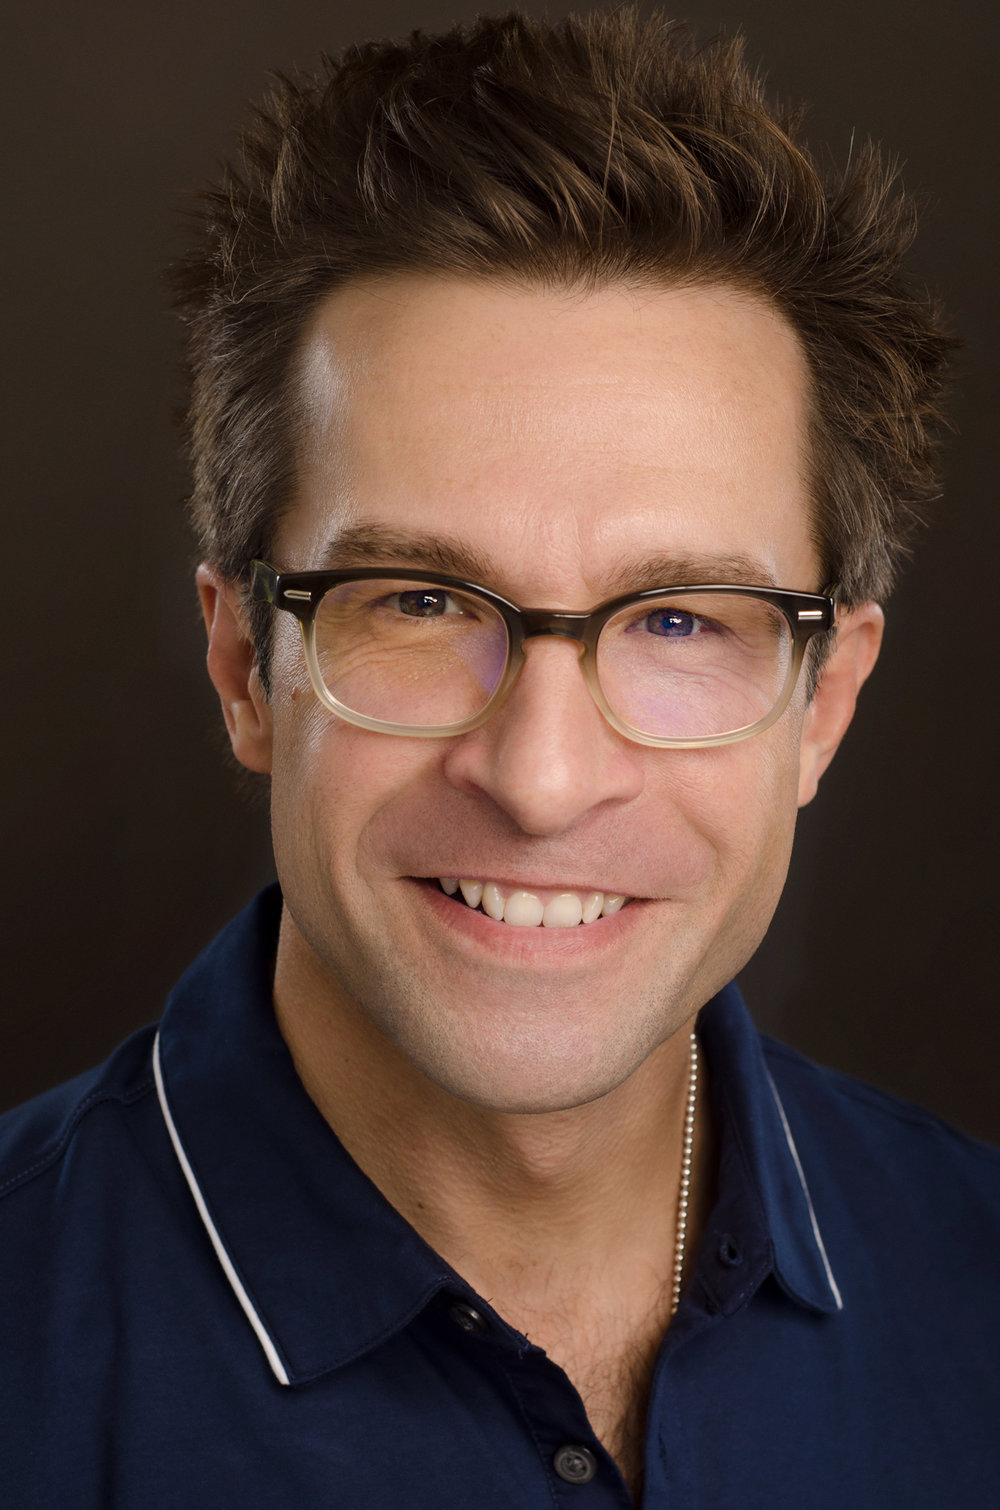 Jeremy Harle, LPC Licensed Professional Counselor Building Wellness from Within